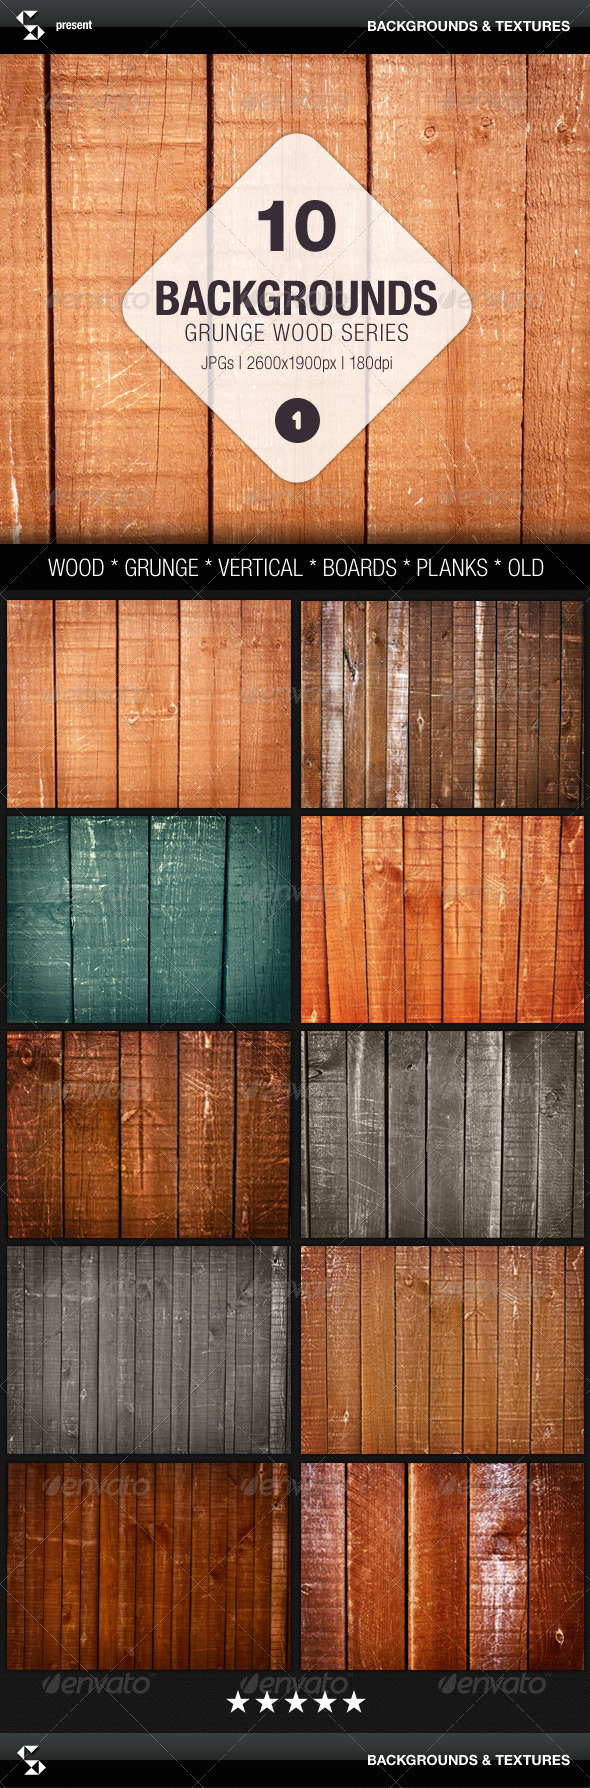 Grunge Wood Background Series 01 Wood Textures